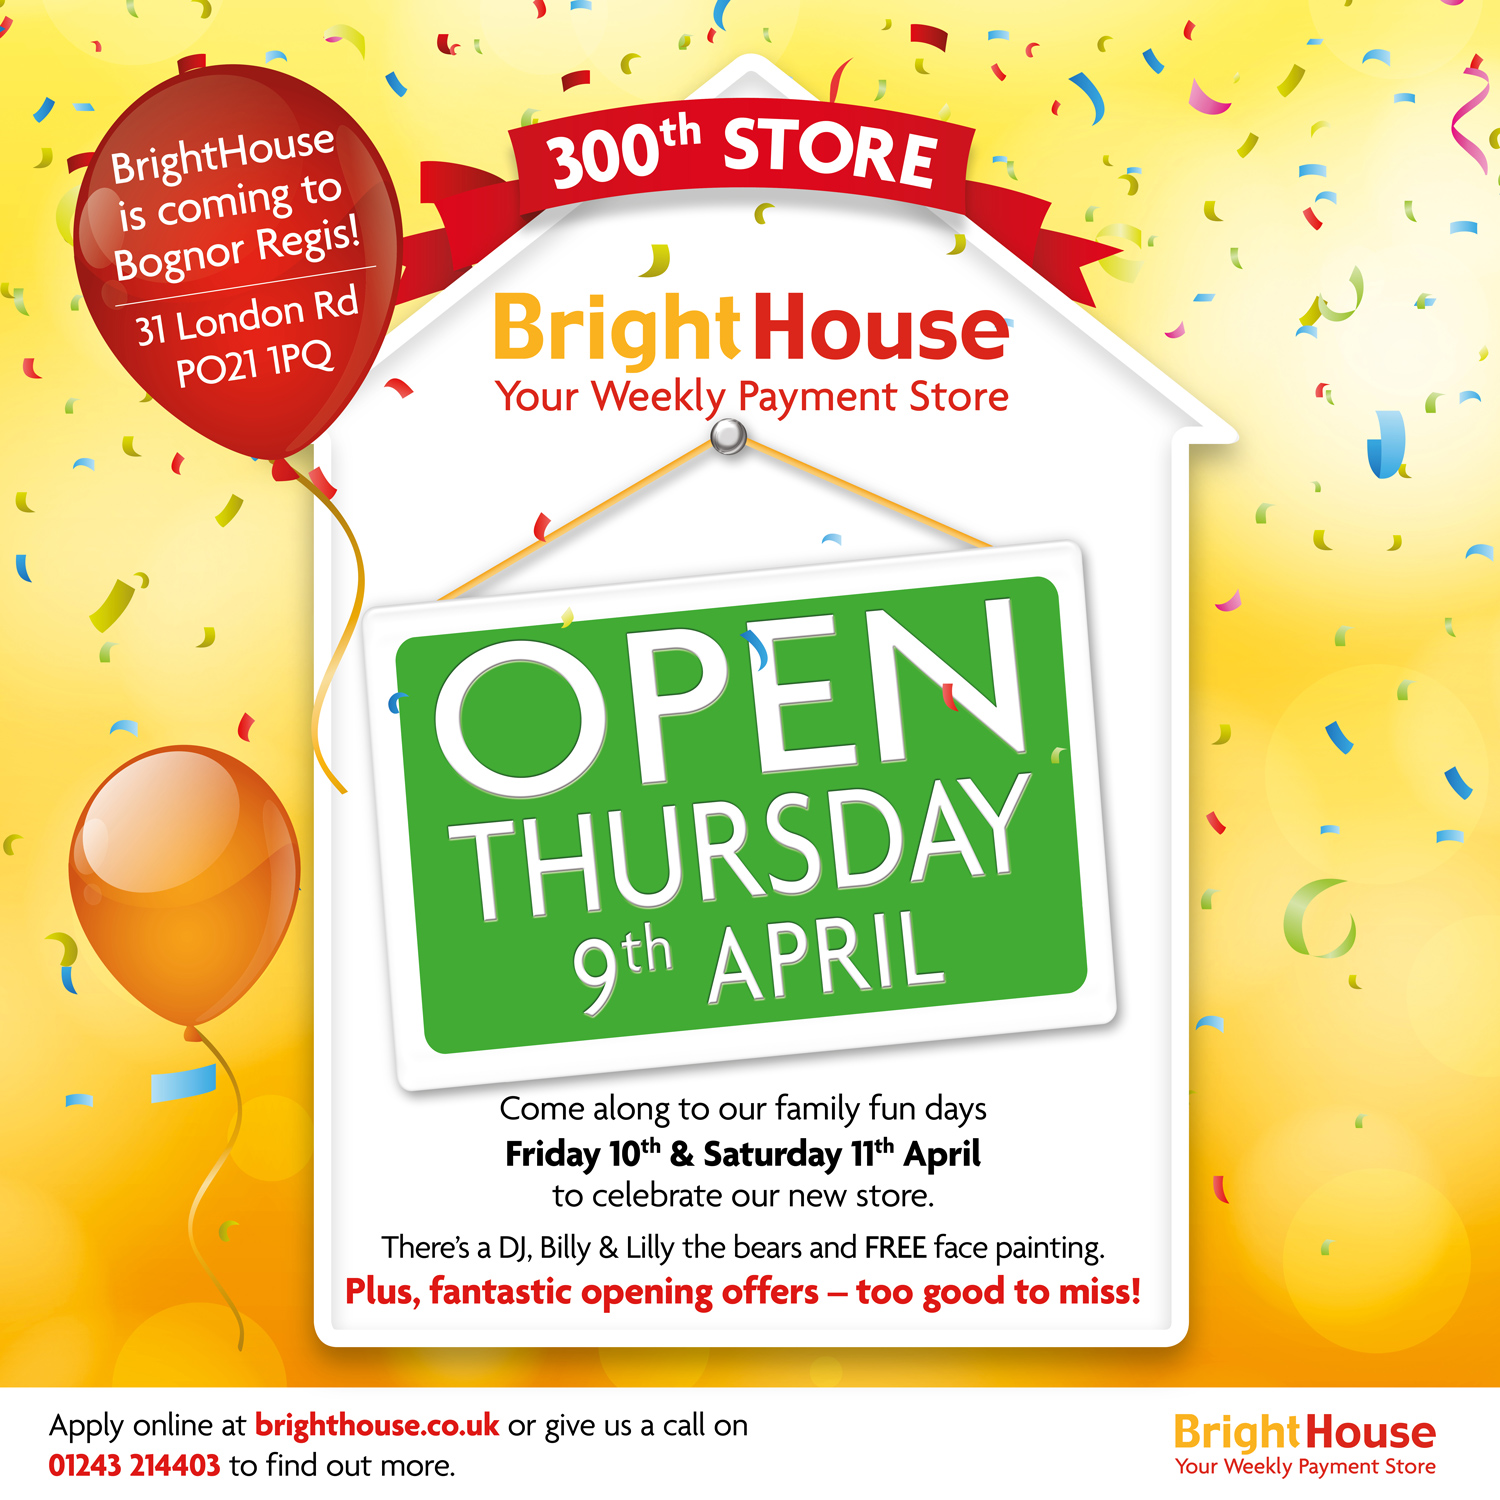 300th BrightHouse Store Opening!